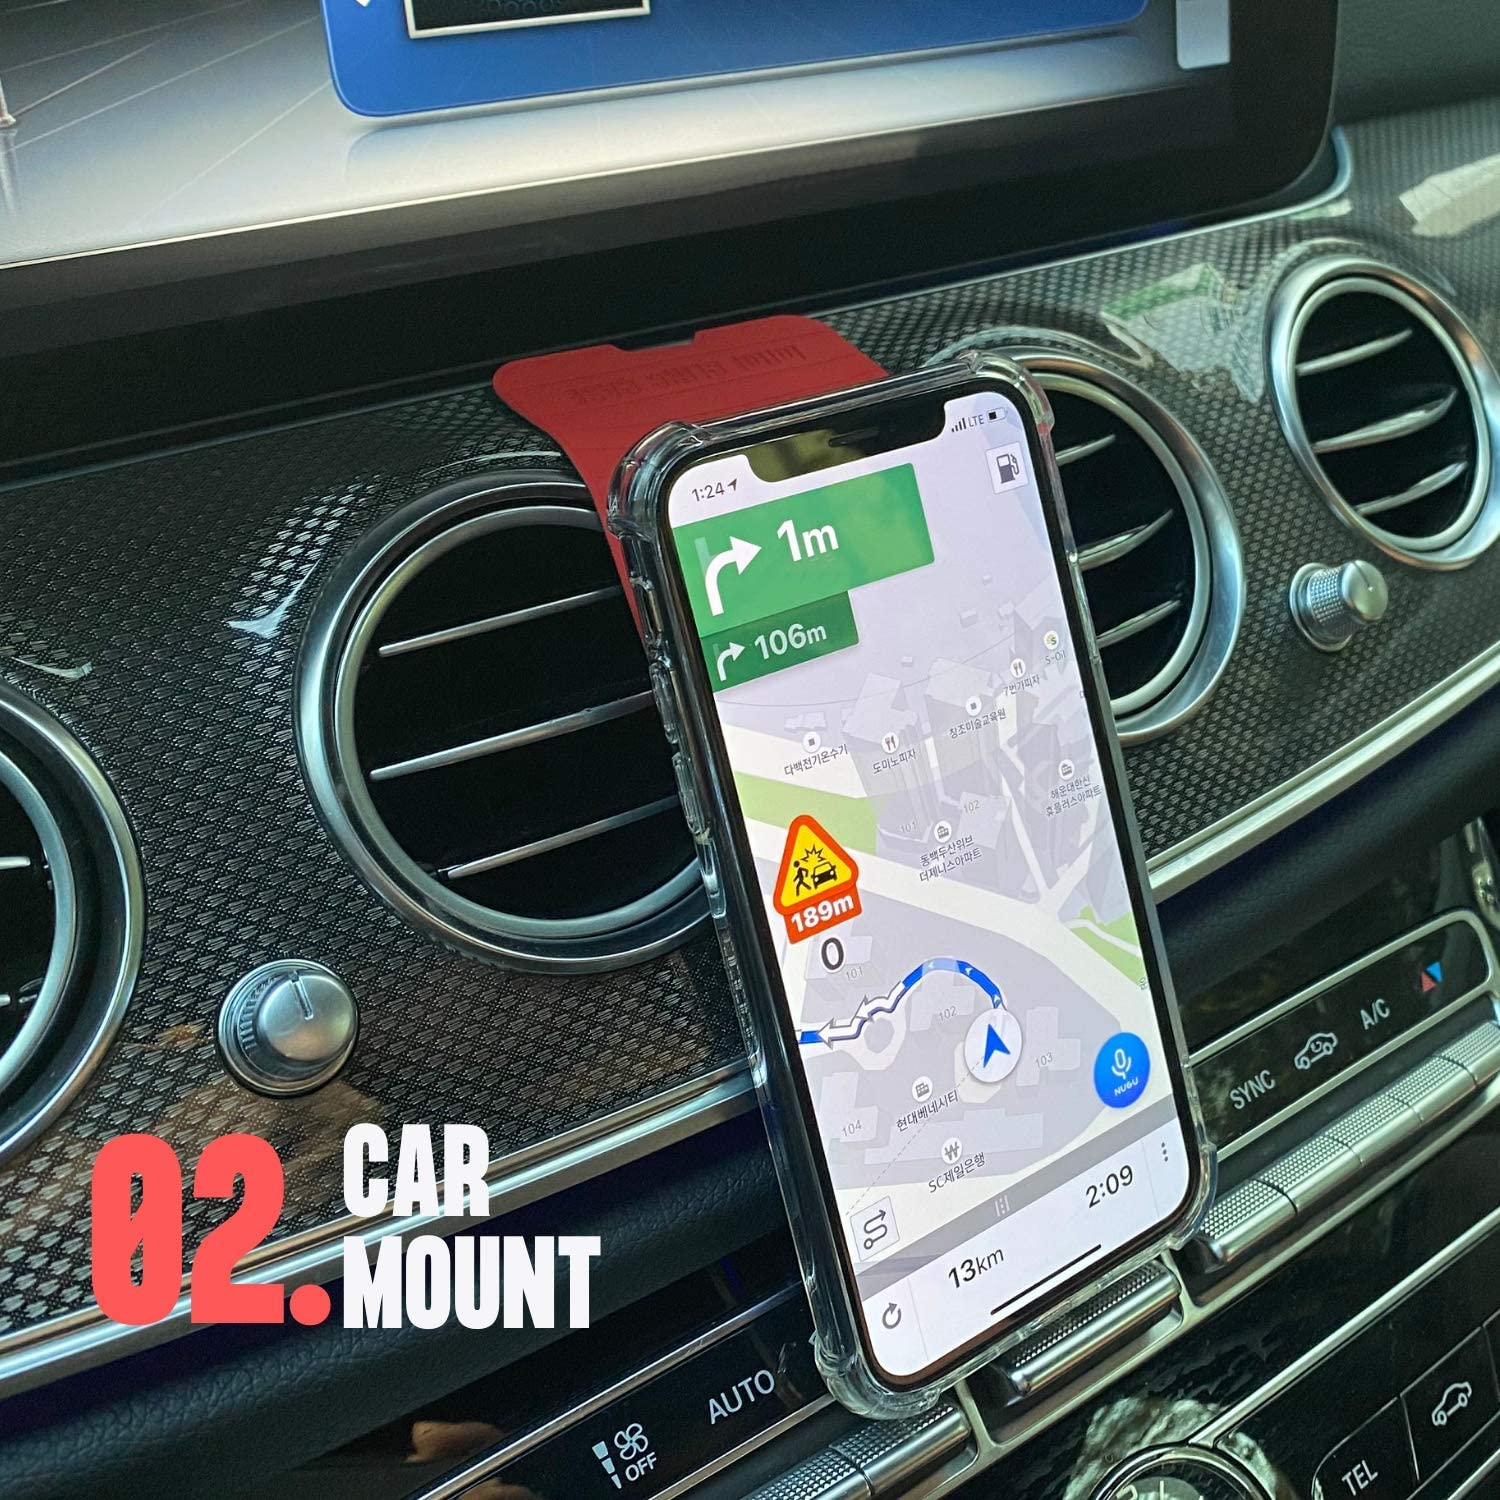 Bike Phone Mount Holder Car Mount for Cell Phone Car Mount CLING Cellphone Holder for Car Gray Compatible with Samsung Note 10 Plus Car Phone Mount Car Car Cell Phone Holder for Car